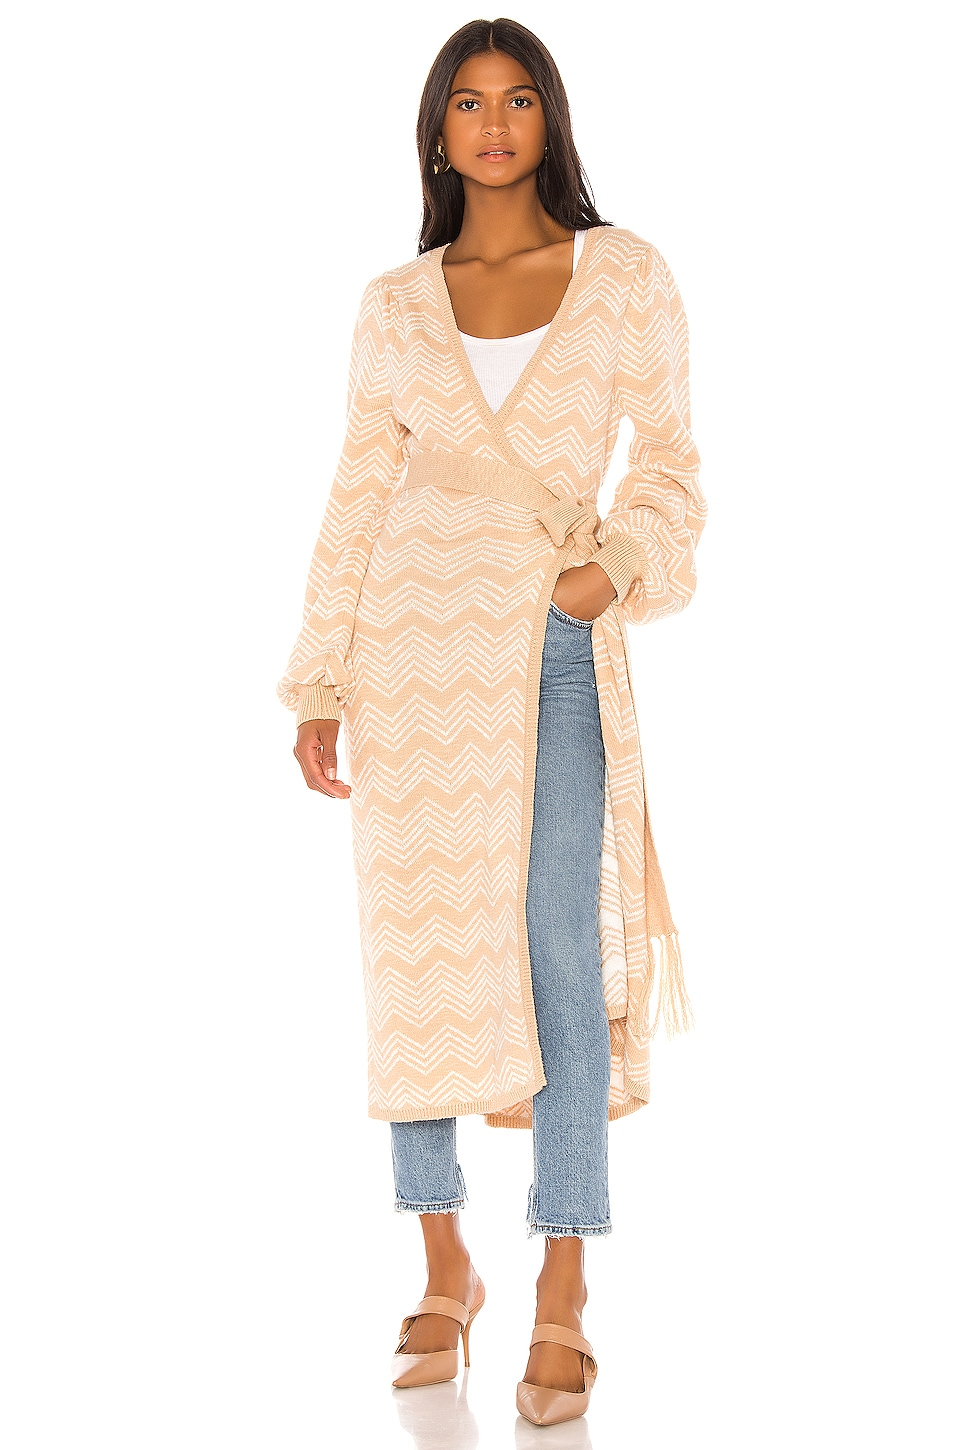 House of Harlow 1960 X REVOLVE Marisol Wrap in Camel